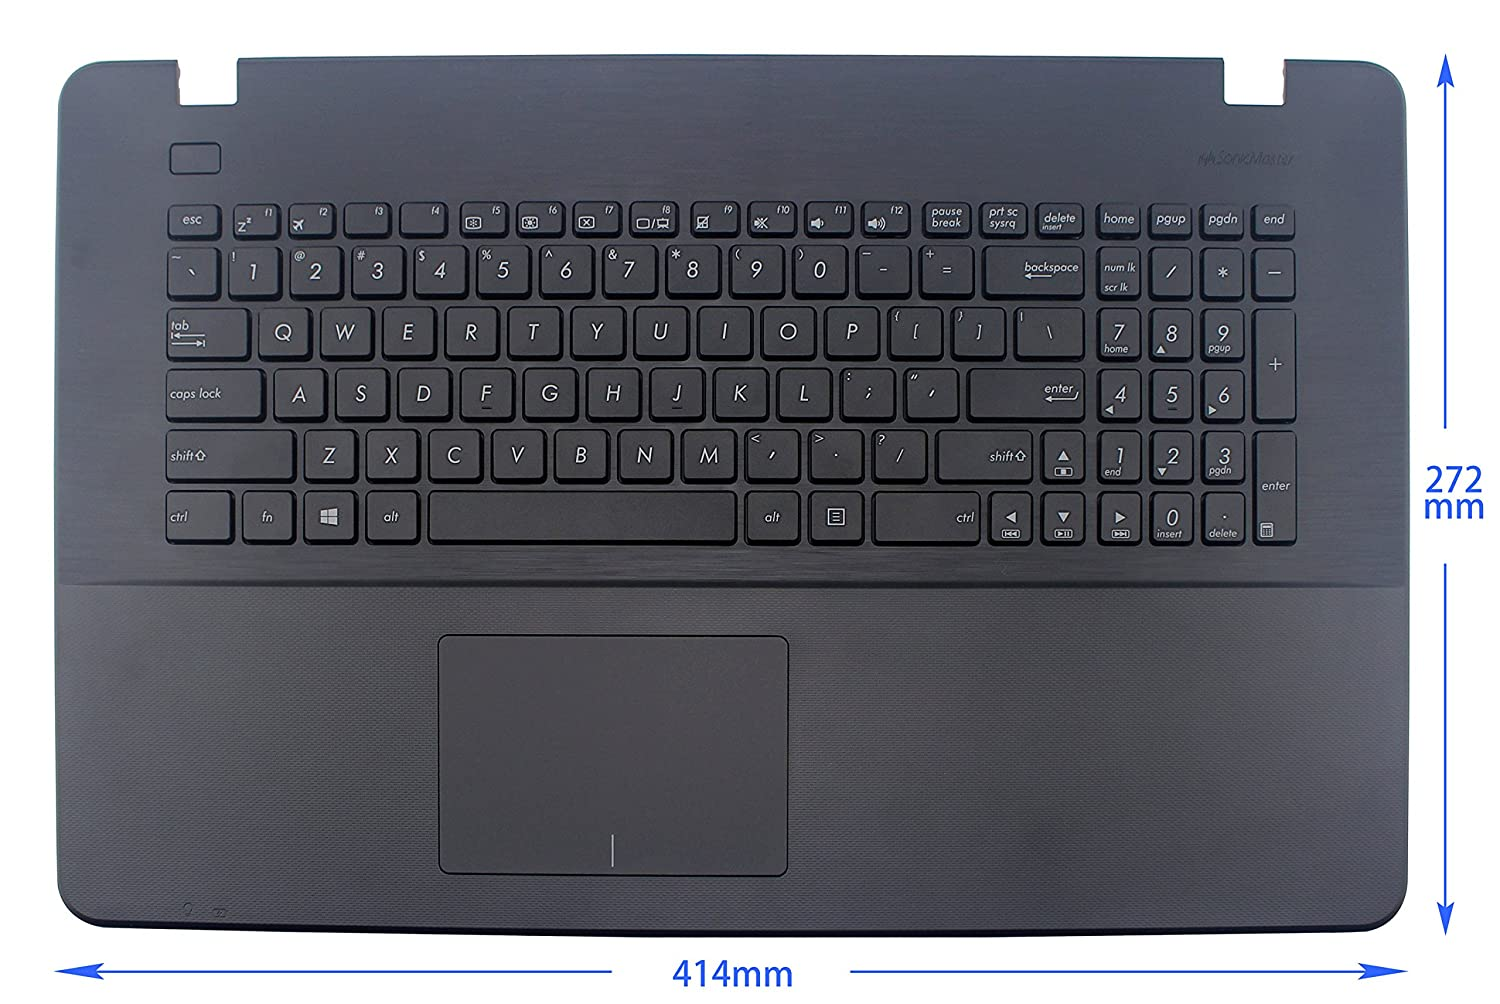 DRIVER FOR ASUS K75VM NOTEBOOK TOUCHPAD